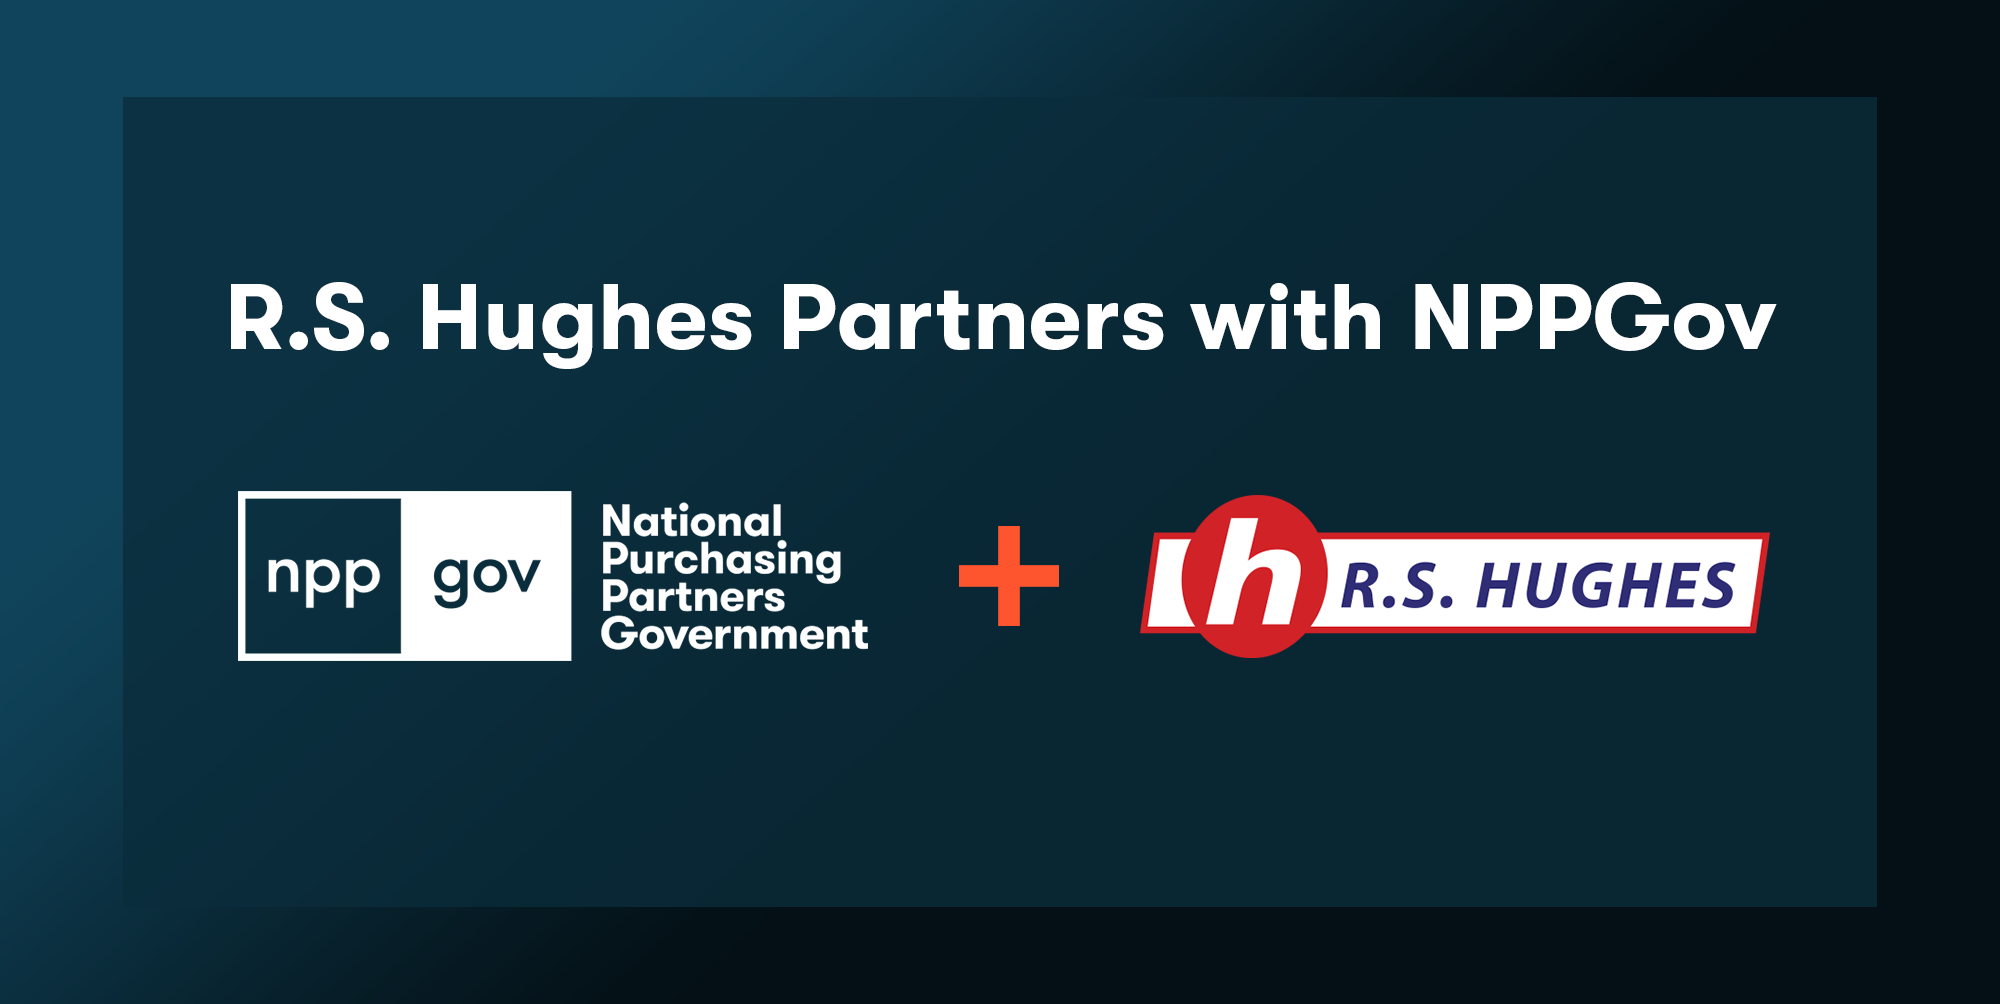 R.S. Hughes Partners with NPPGov